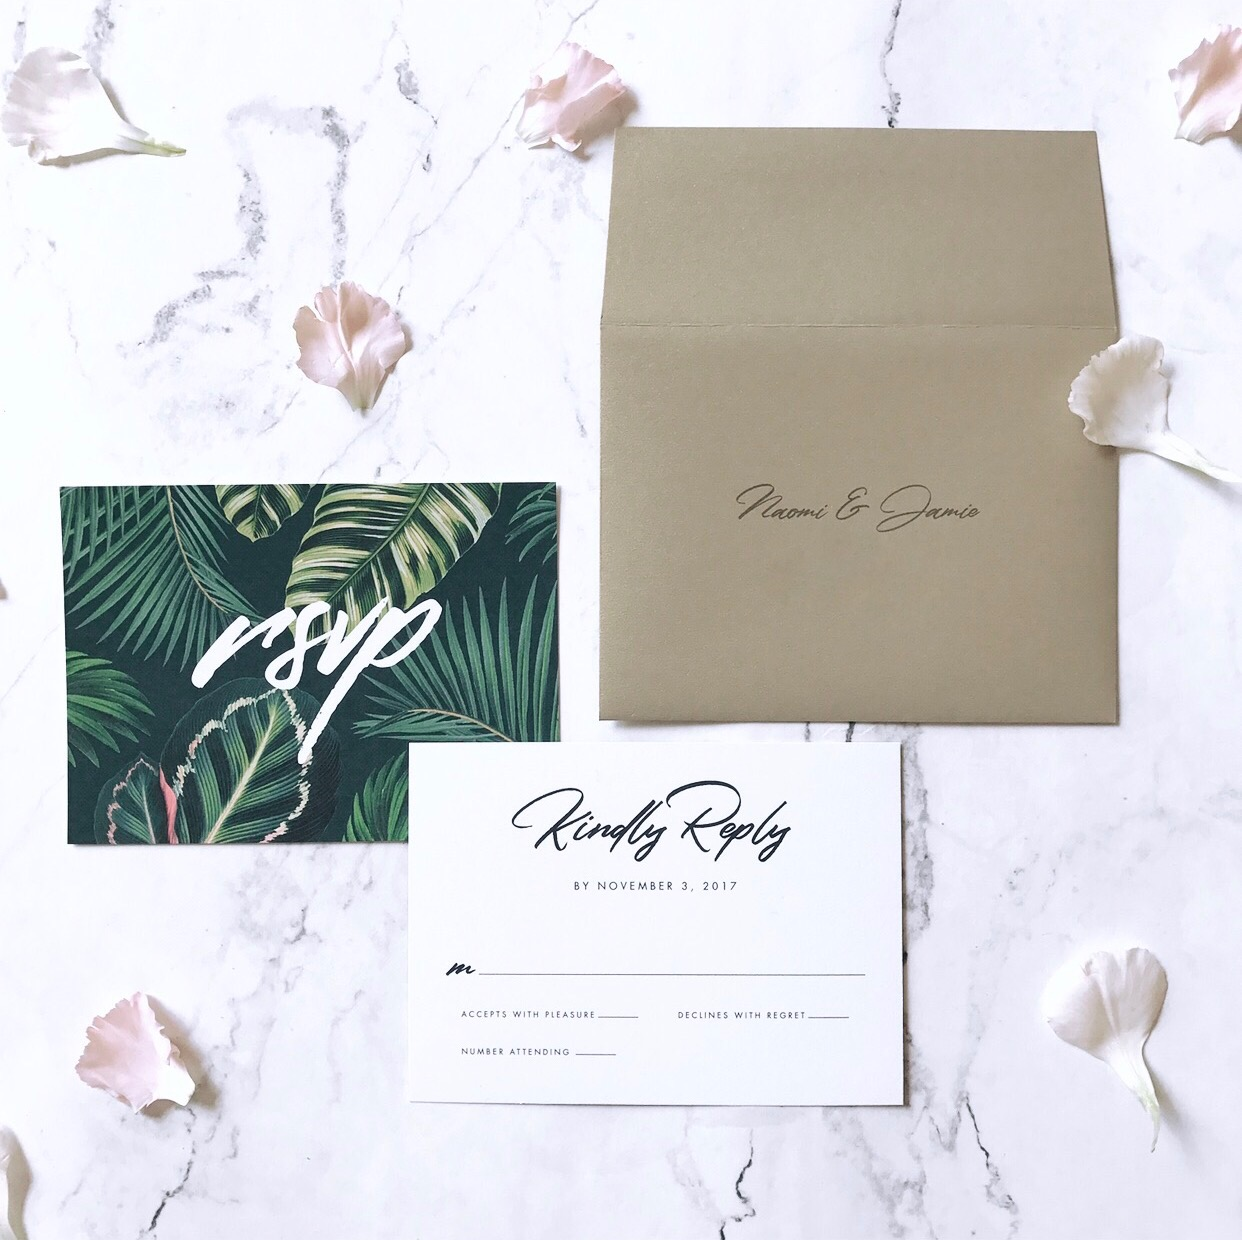 rsvp card front and back